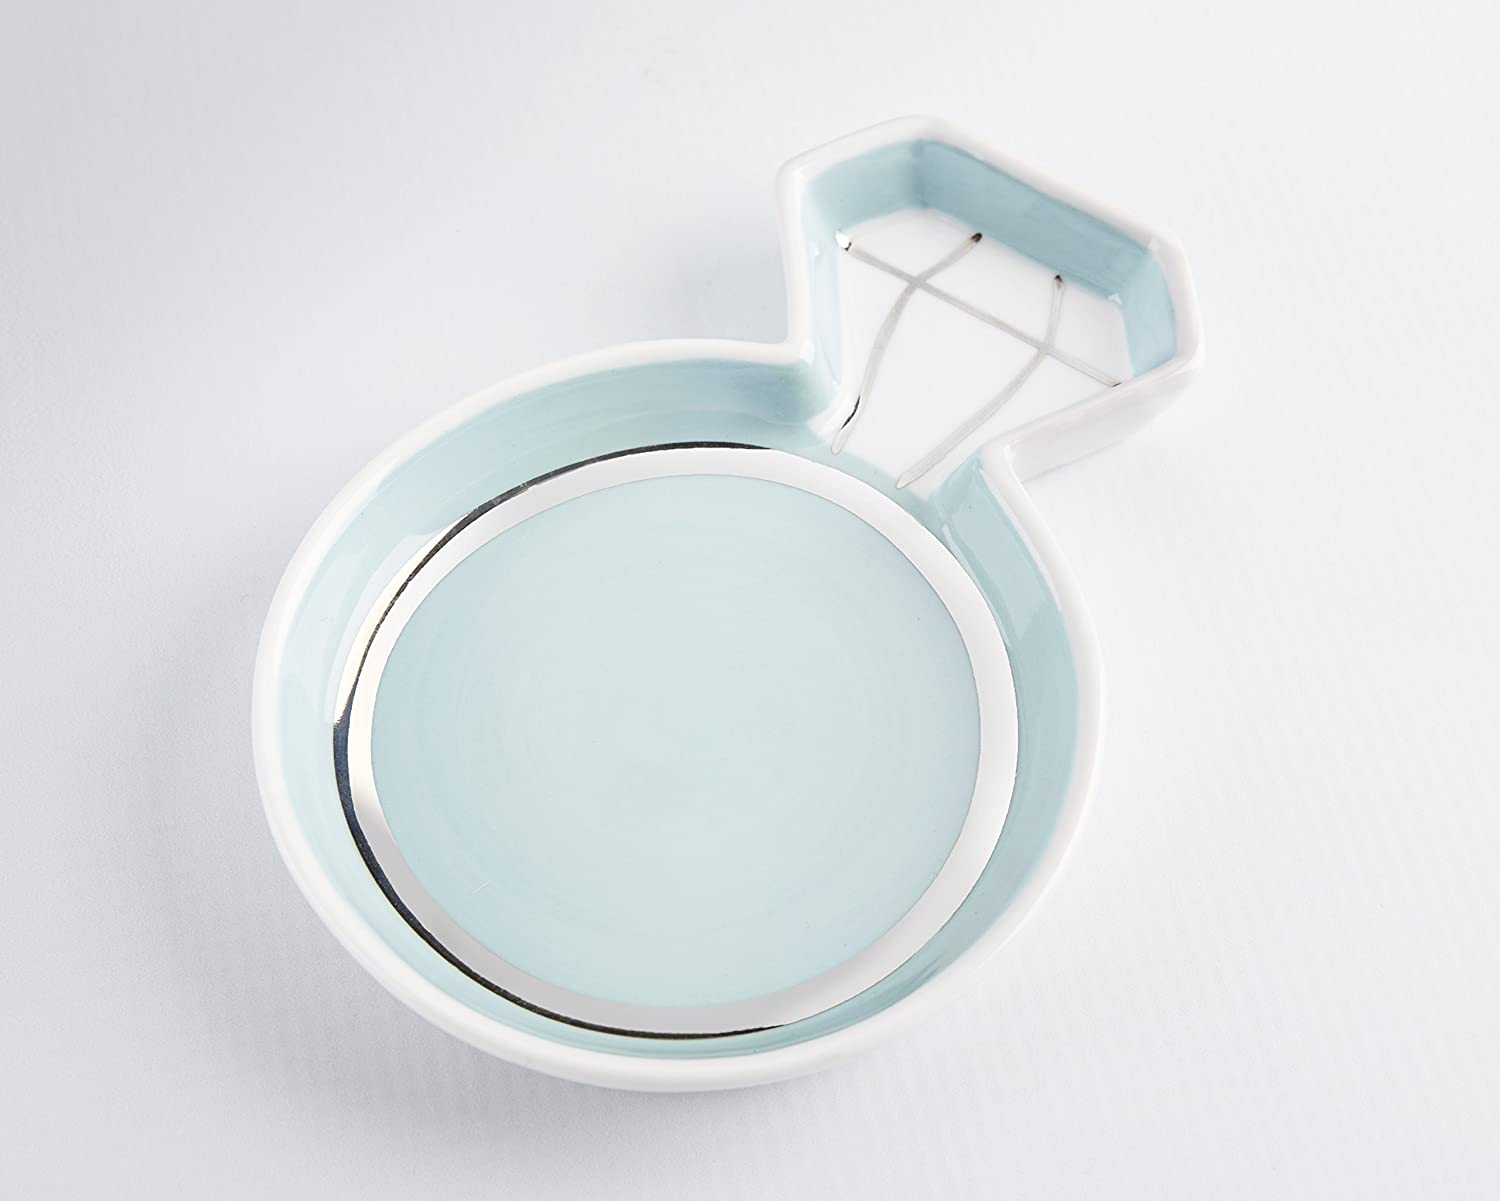 Kate Aspen, Diamond Ring Trinket Dish, Jewelry Holder Catchall Ceramic Gift, Perfect for Bridal Shower and Party